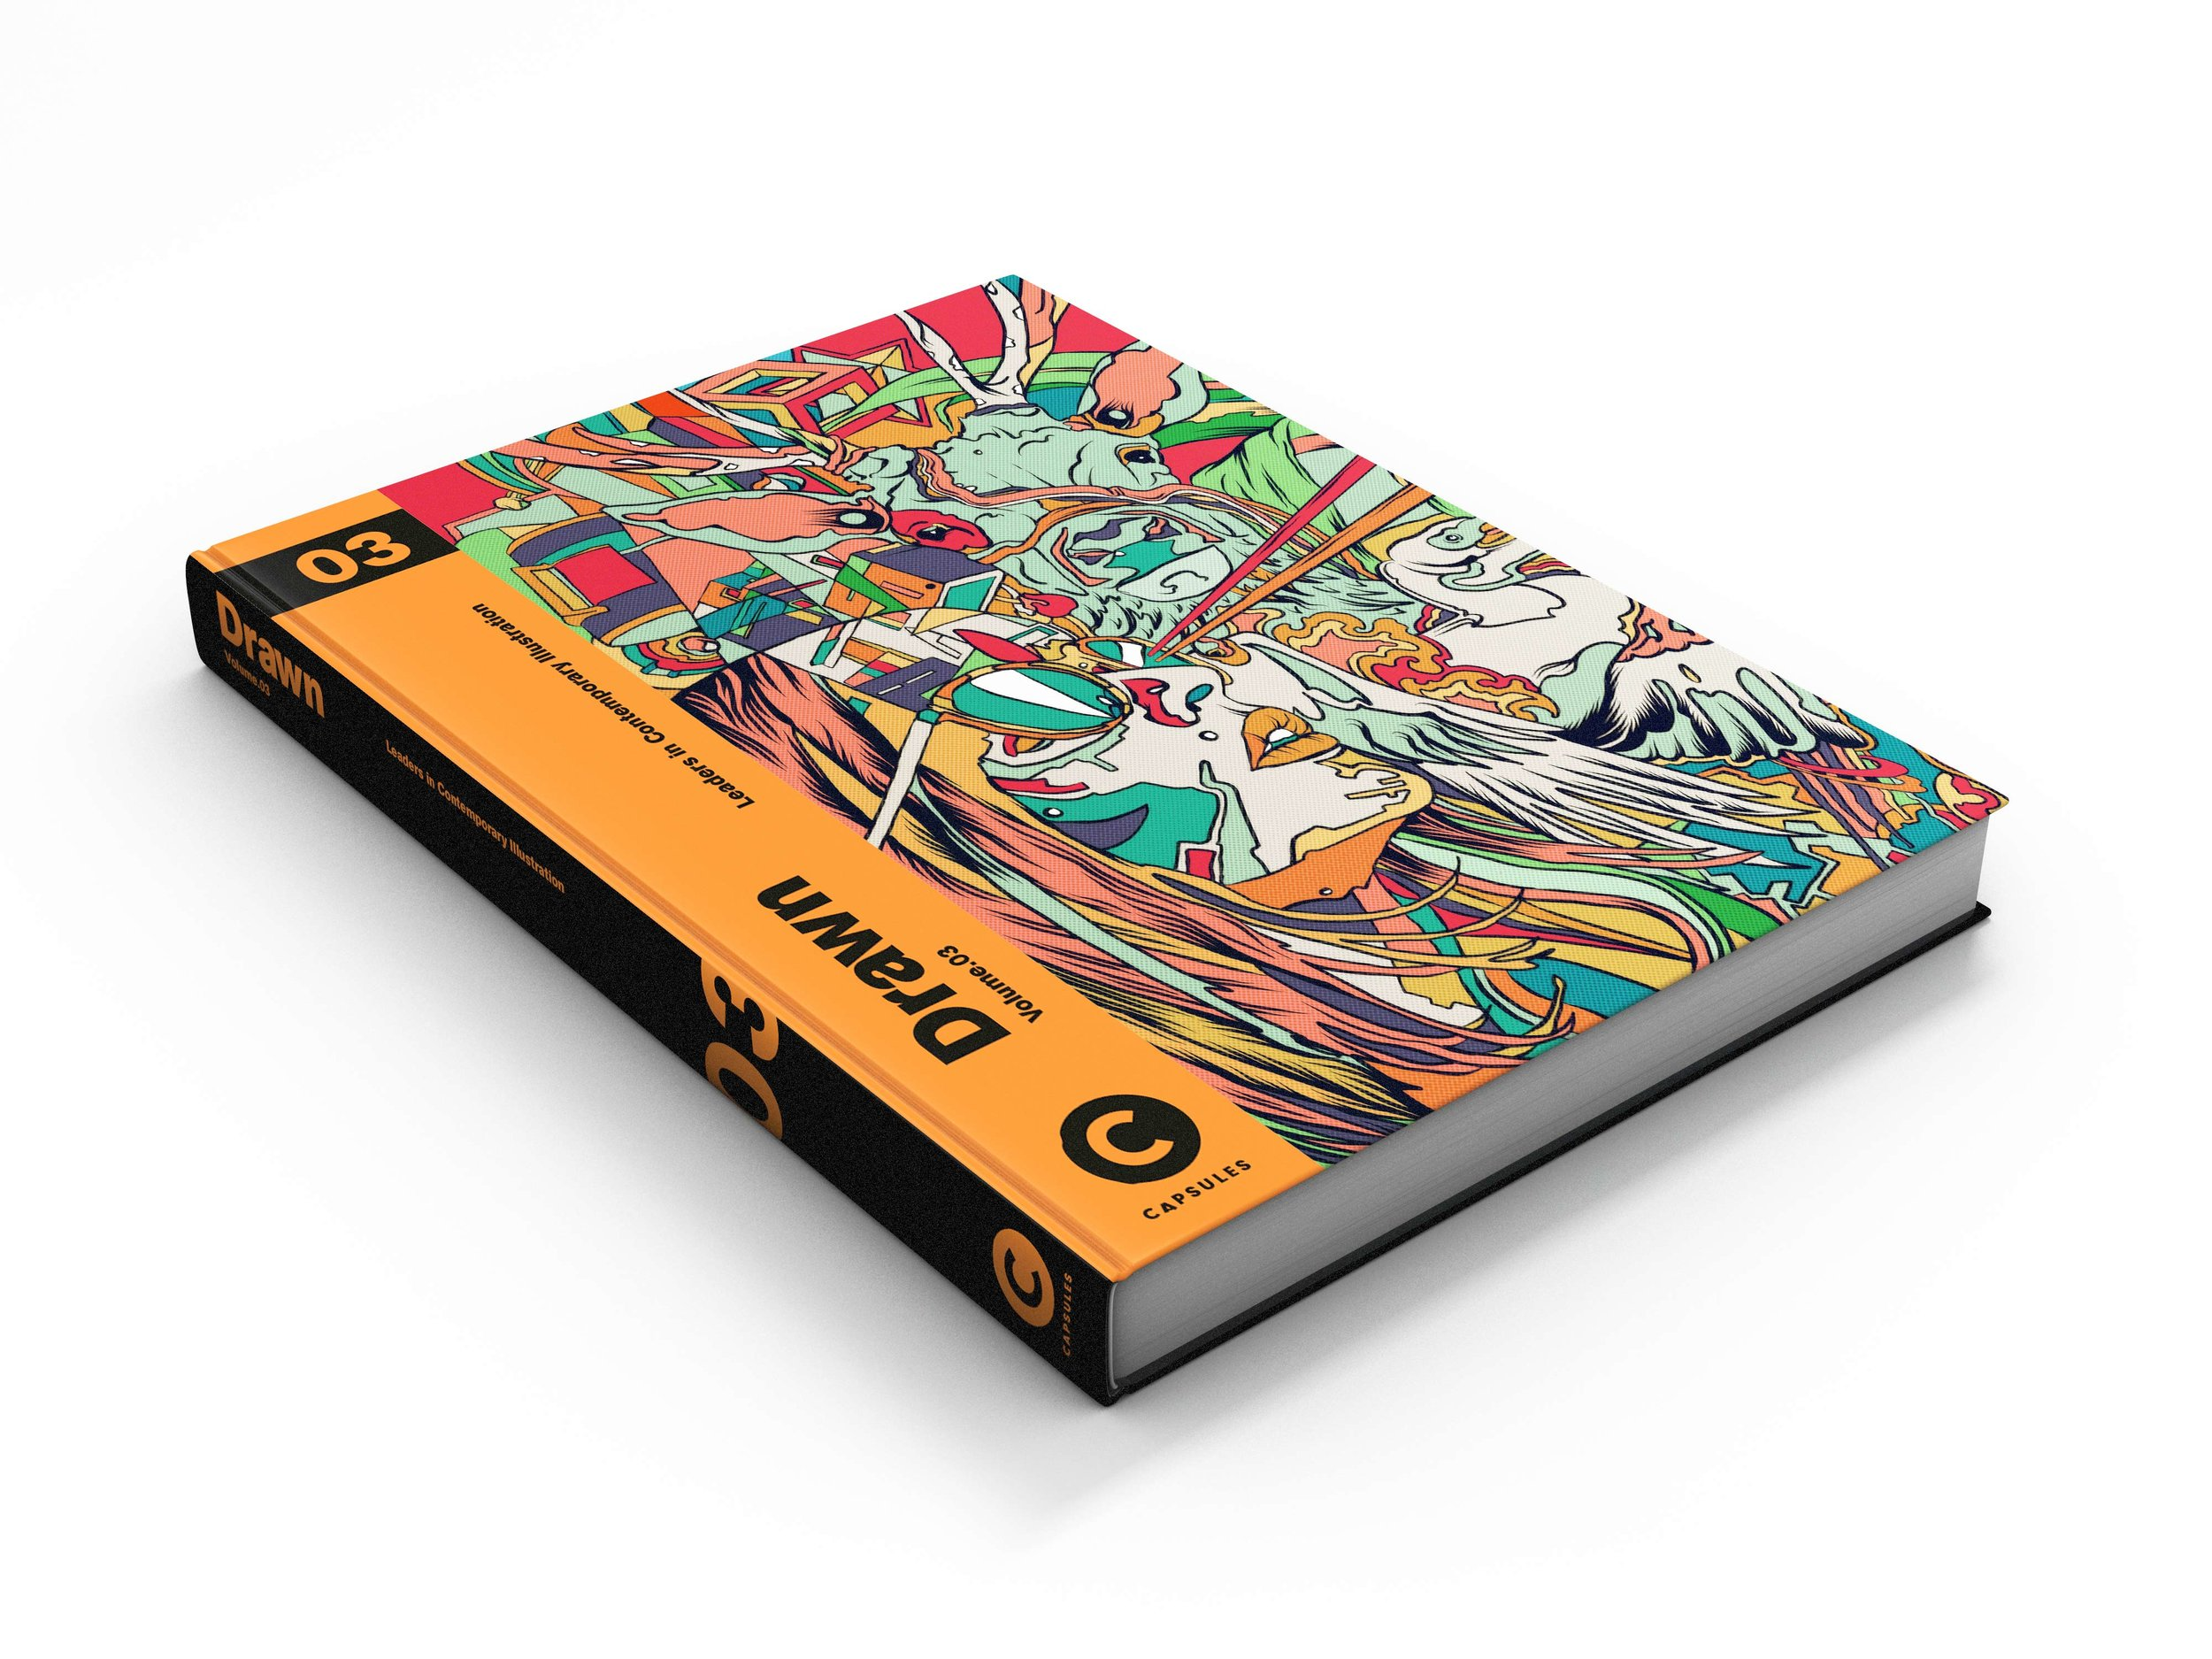 Drawn Volume.3, Leaders in Contemporary Illustration